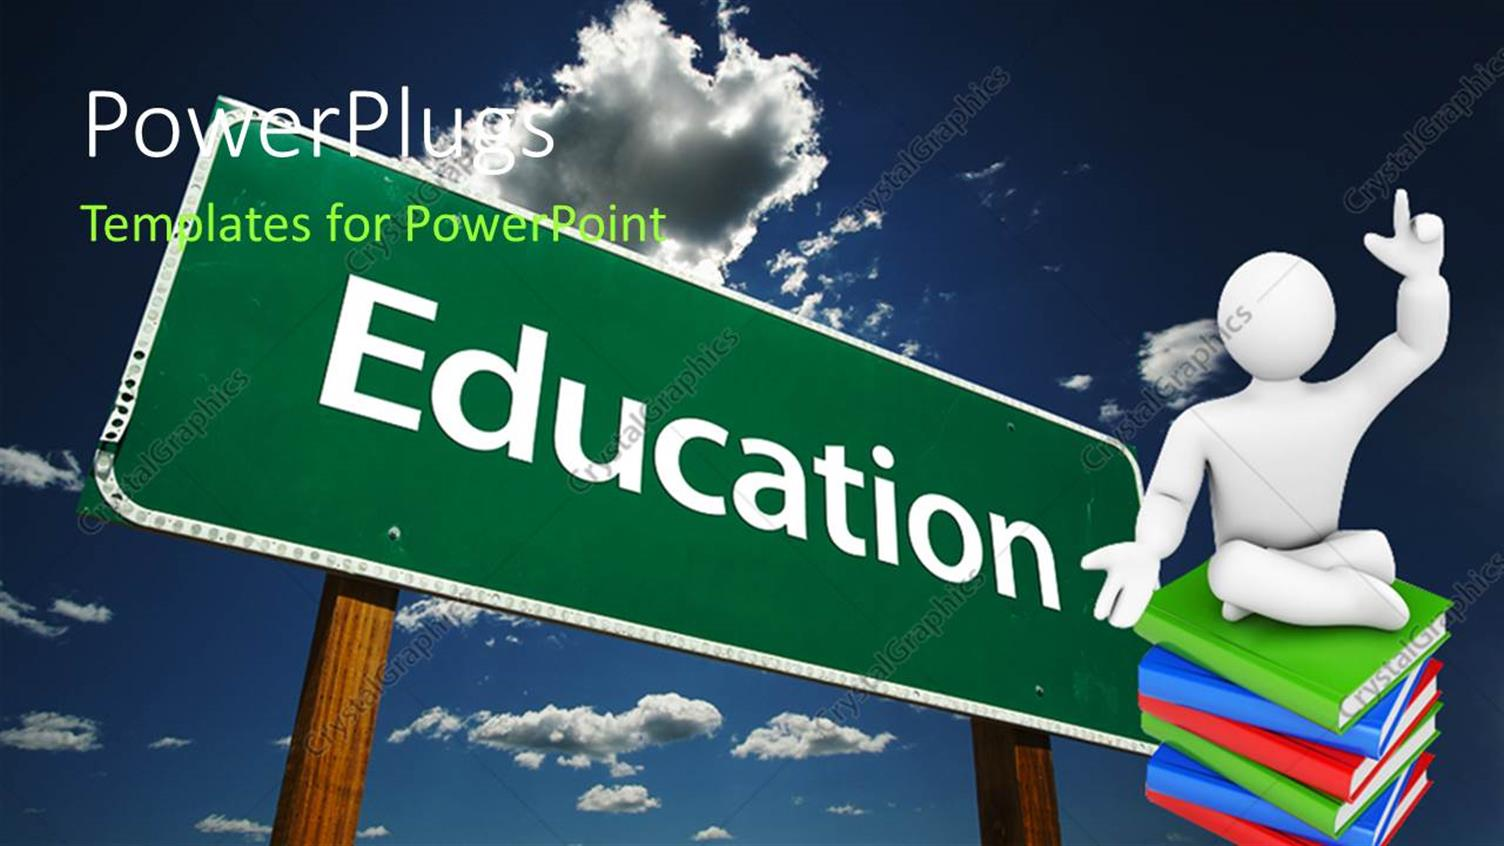 Powerpoint Template Education Theme With Education Word On Green